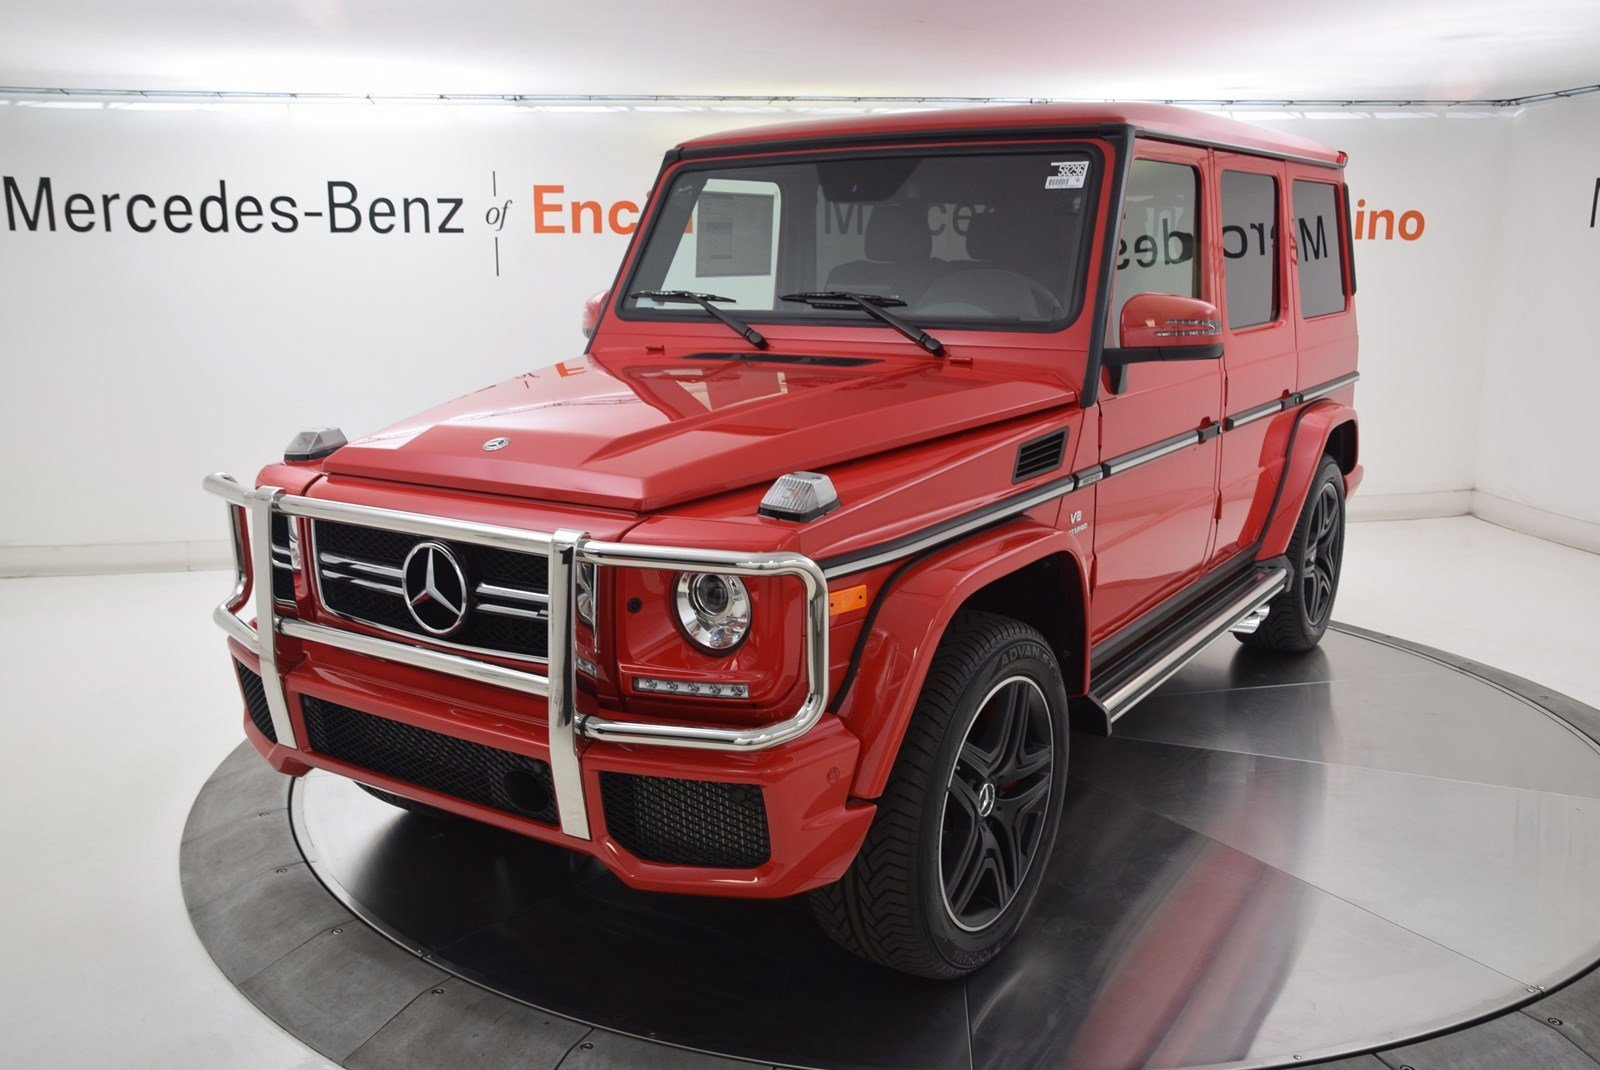 New 2018 mercedes benz g class amg g 63 suv suv in encino for Mercedes benz suv g class price